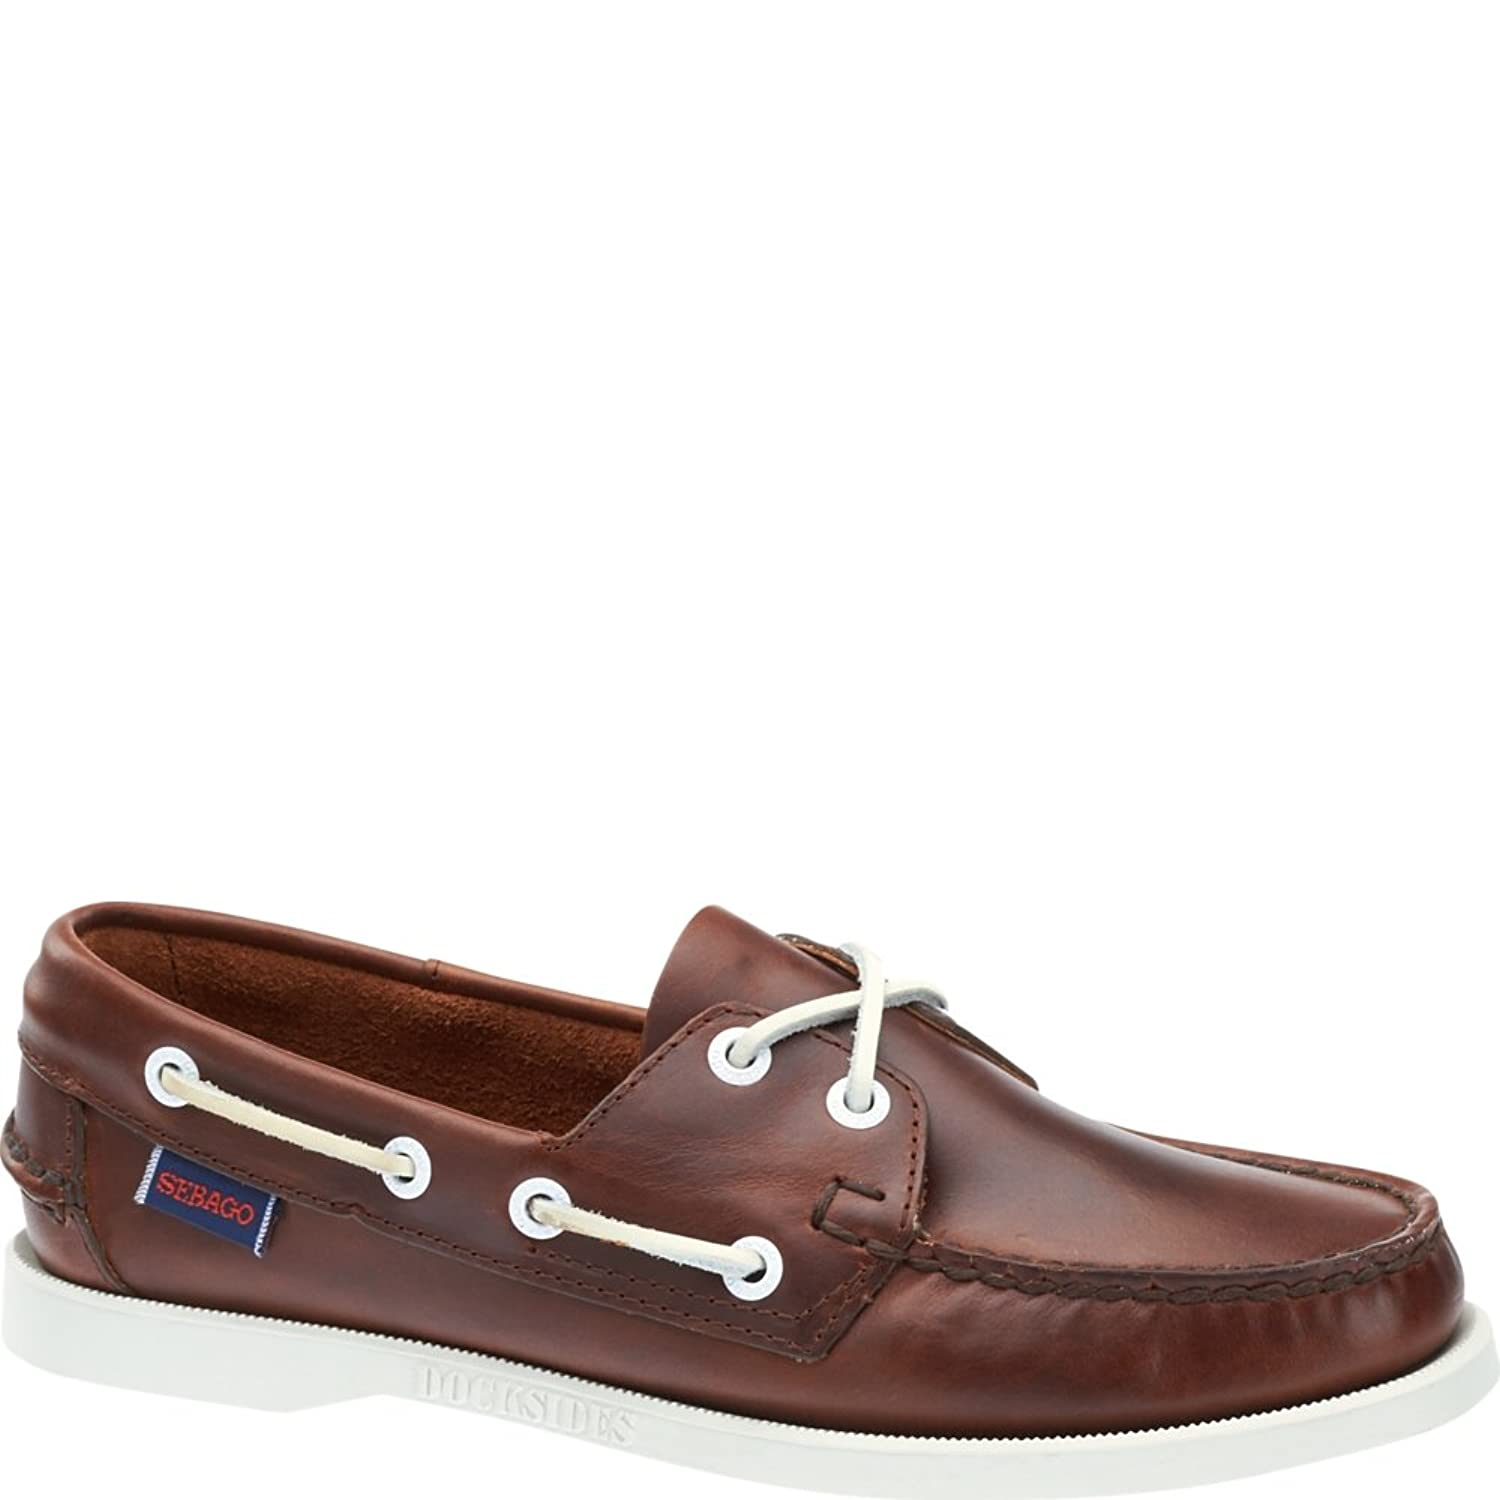 Sebago Women's Dockside Penny Loafer